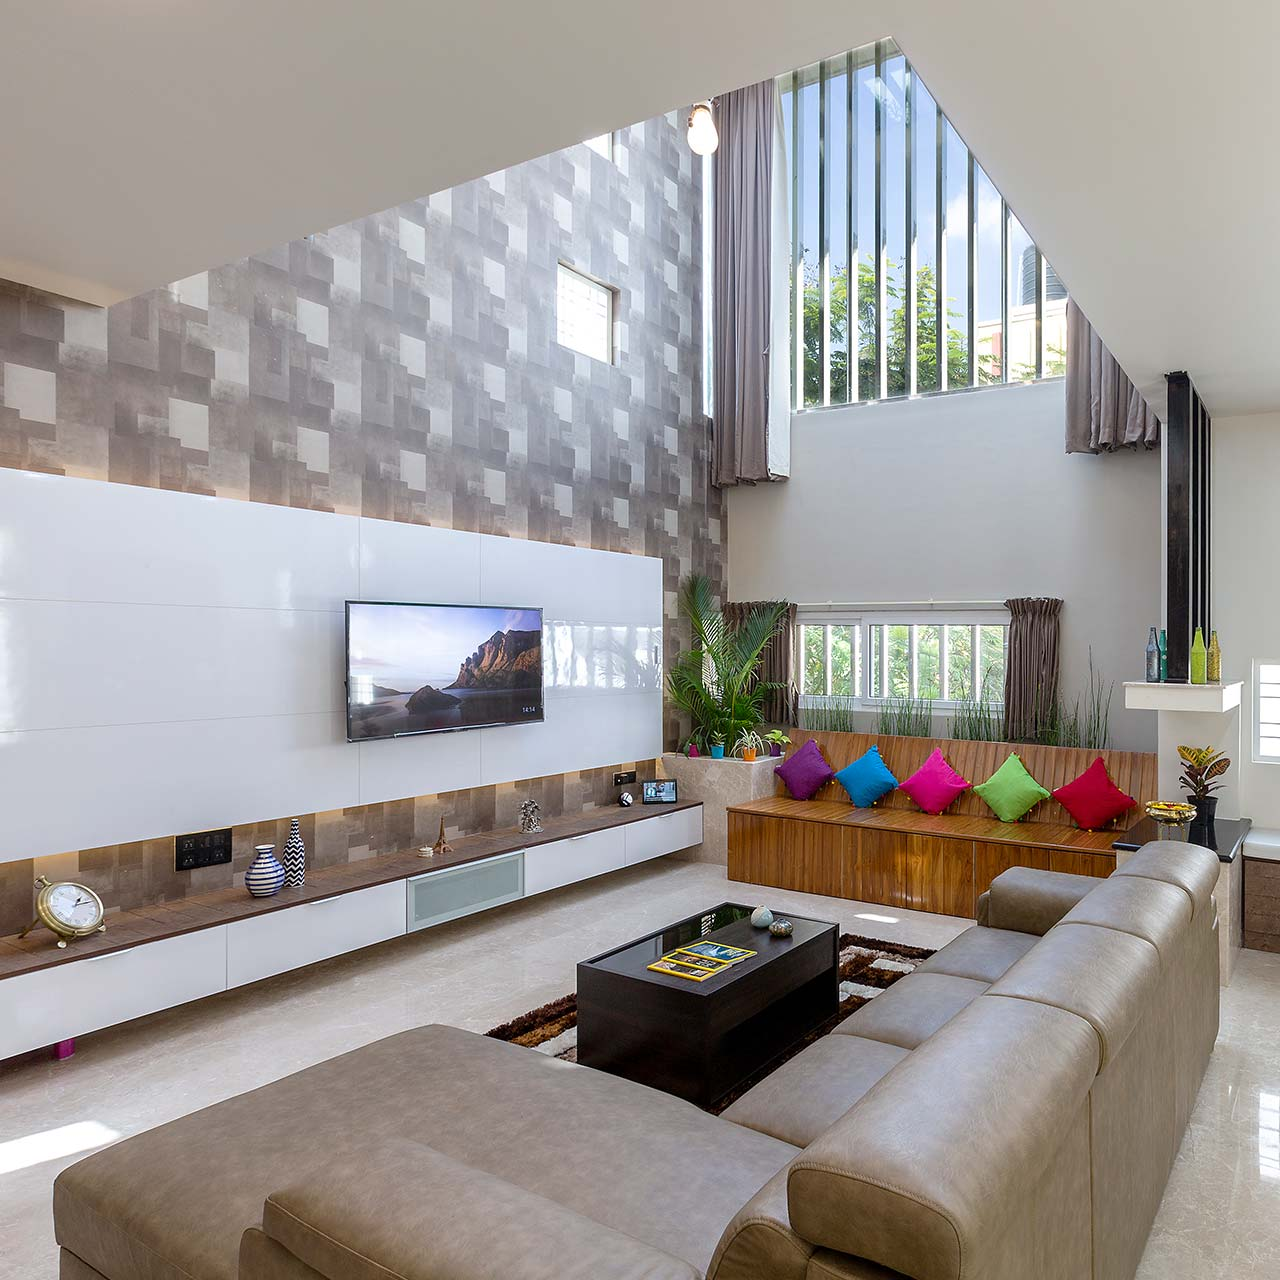 Difference between interior designer and decorator which creates architecturally and aesthetically optimised spaces